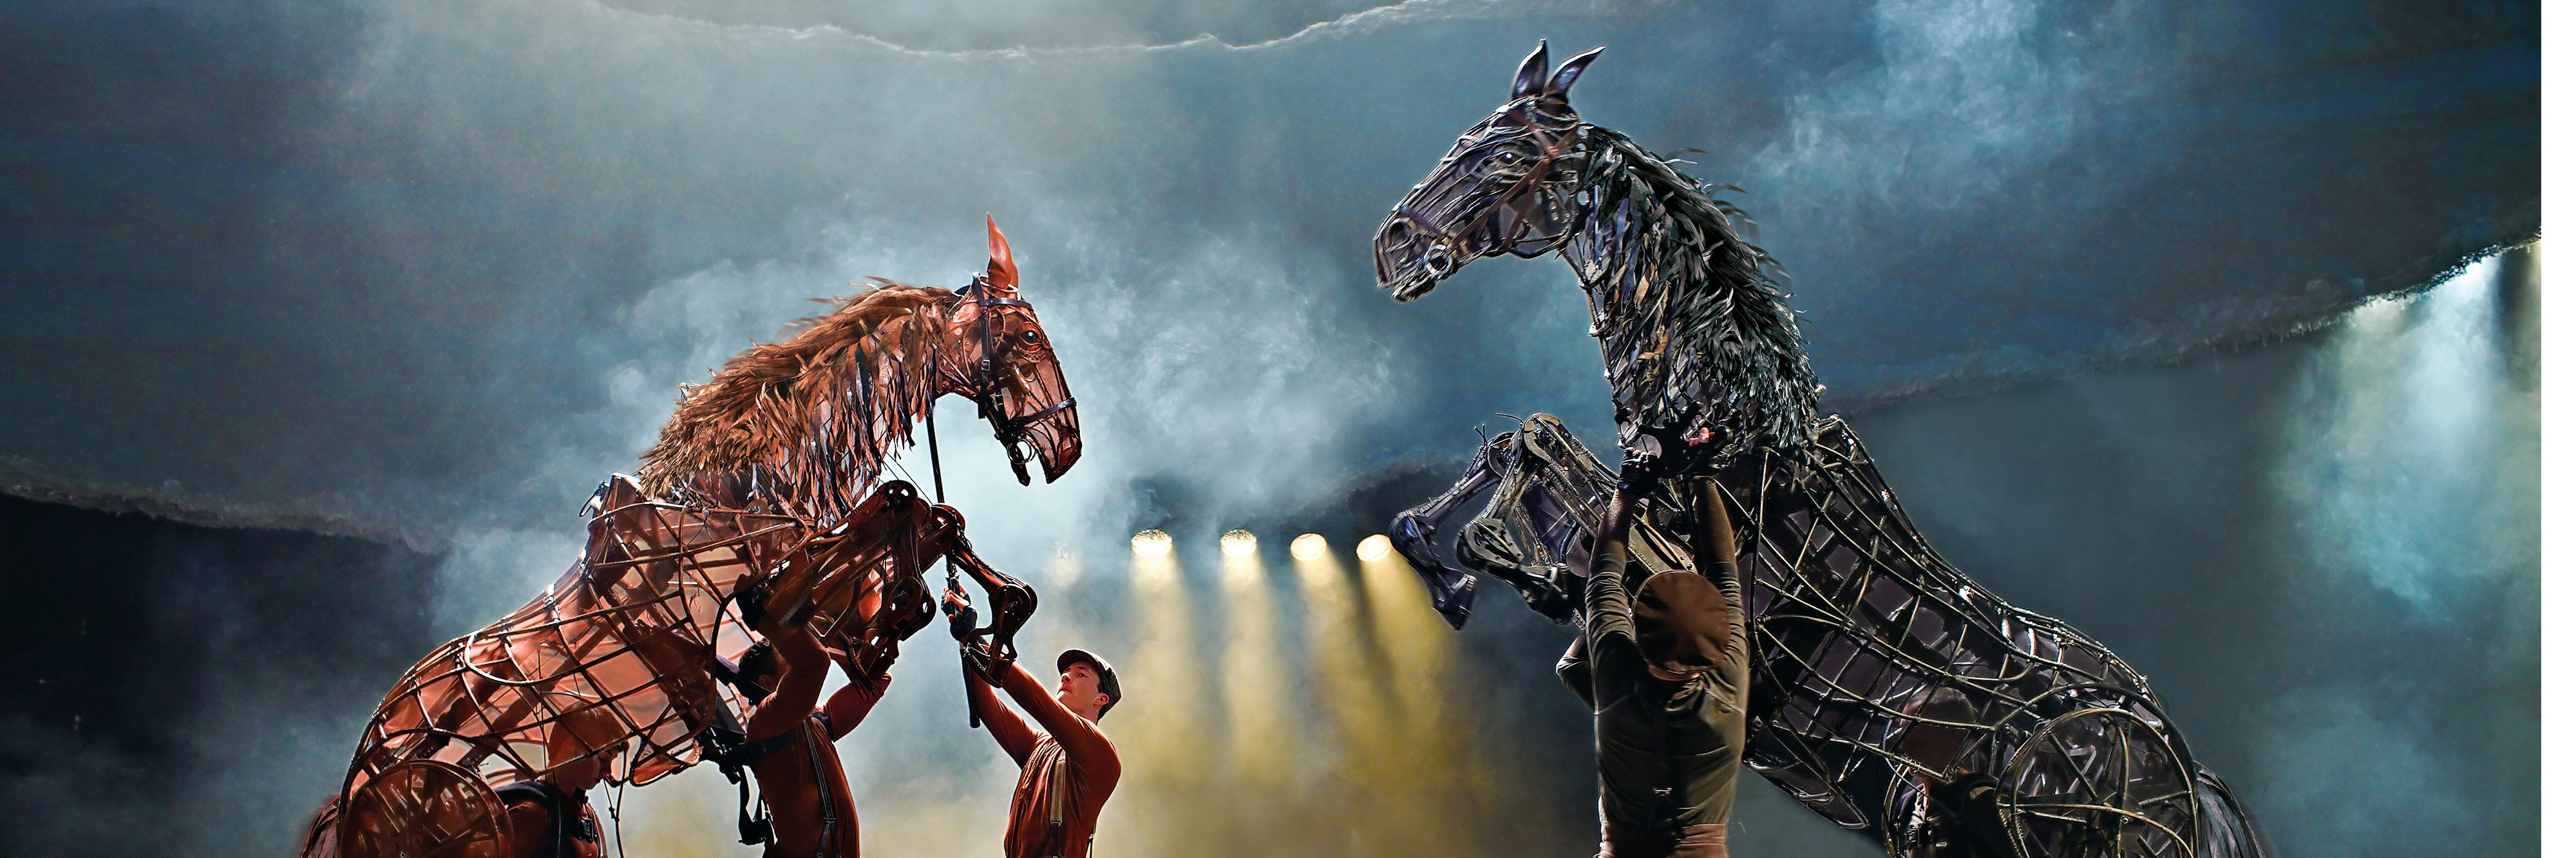 war horse paper The horse comes back into the poem at this stage as he is the symbol of war he is the powerful, invading force that we watch fearfully but hope will not impact on our lives.